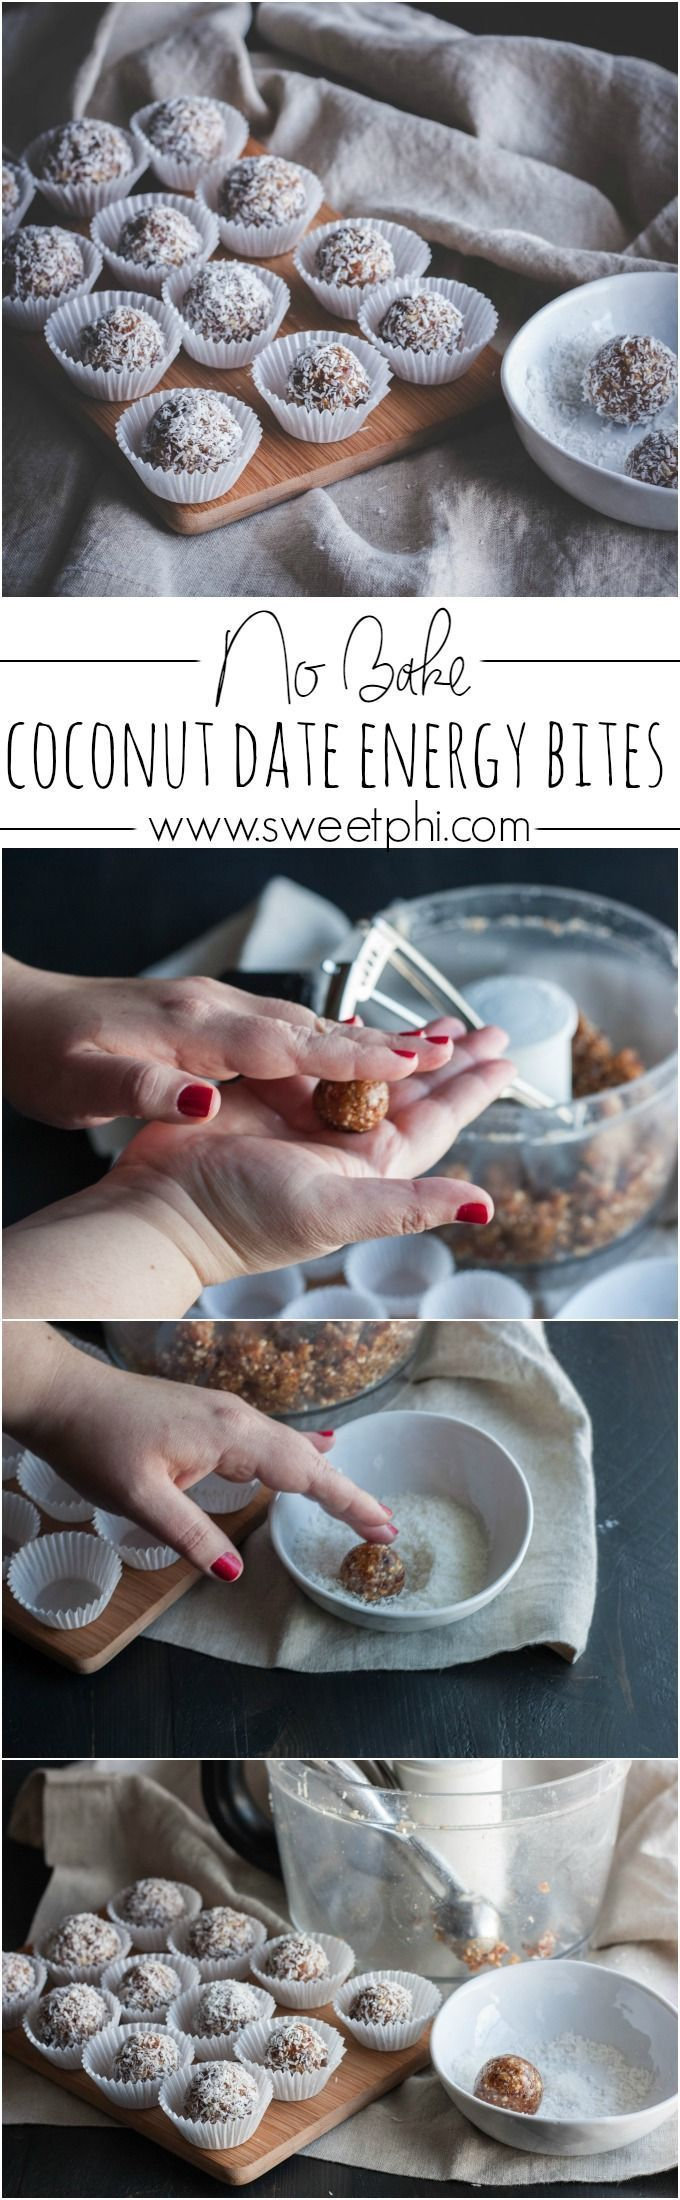 No bake coconut date energy bites, date energy balls, energy bites, date recipes, recipes with dates, no sugar added dessert, whole30 recipe, gluten free and vegan recipe from @sweetphi